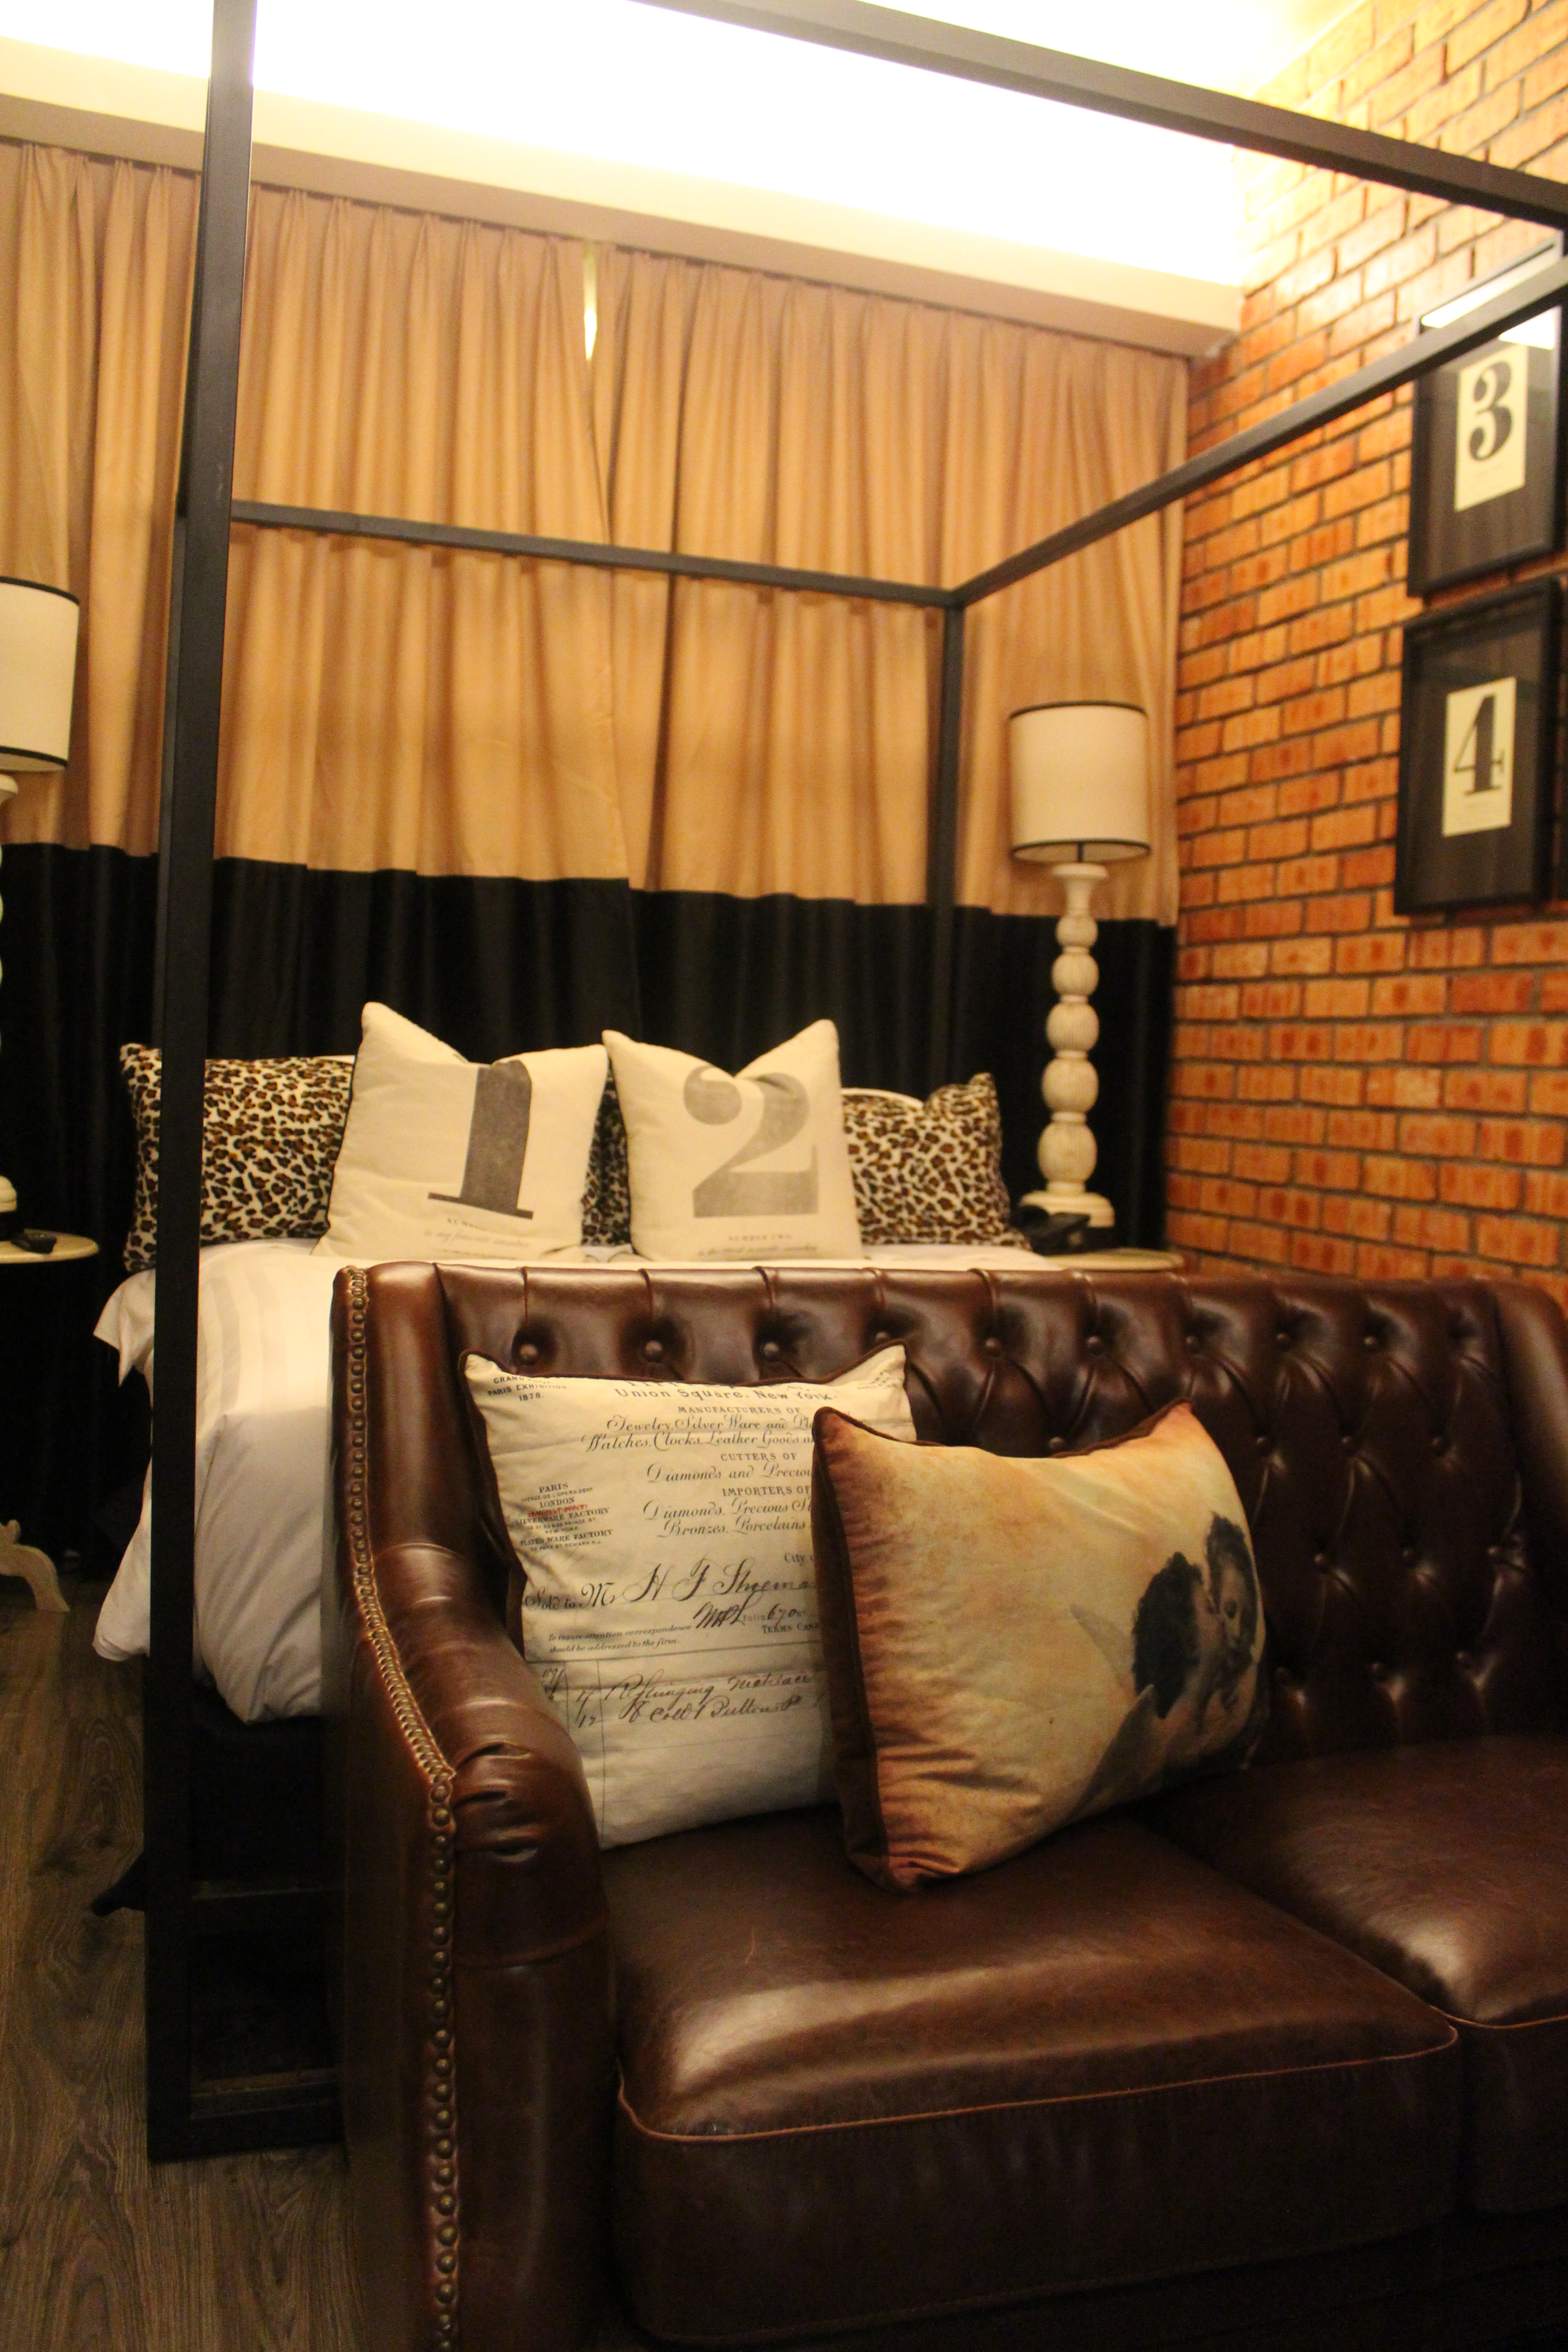 bedroom with a modern four poster bed decorated in a New York apartment style with exposed brick work, a brown leather sofa at the foot of the bed and animal print cushions